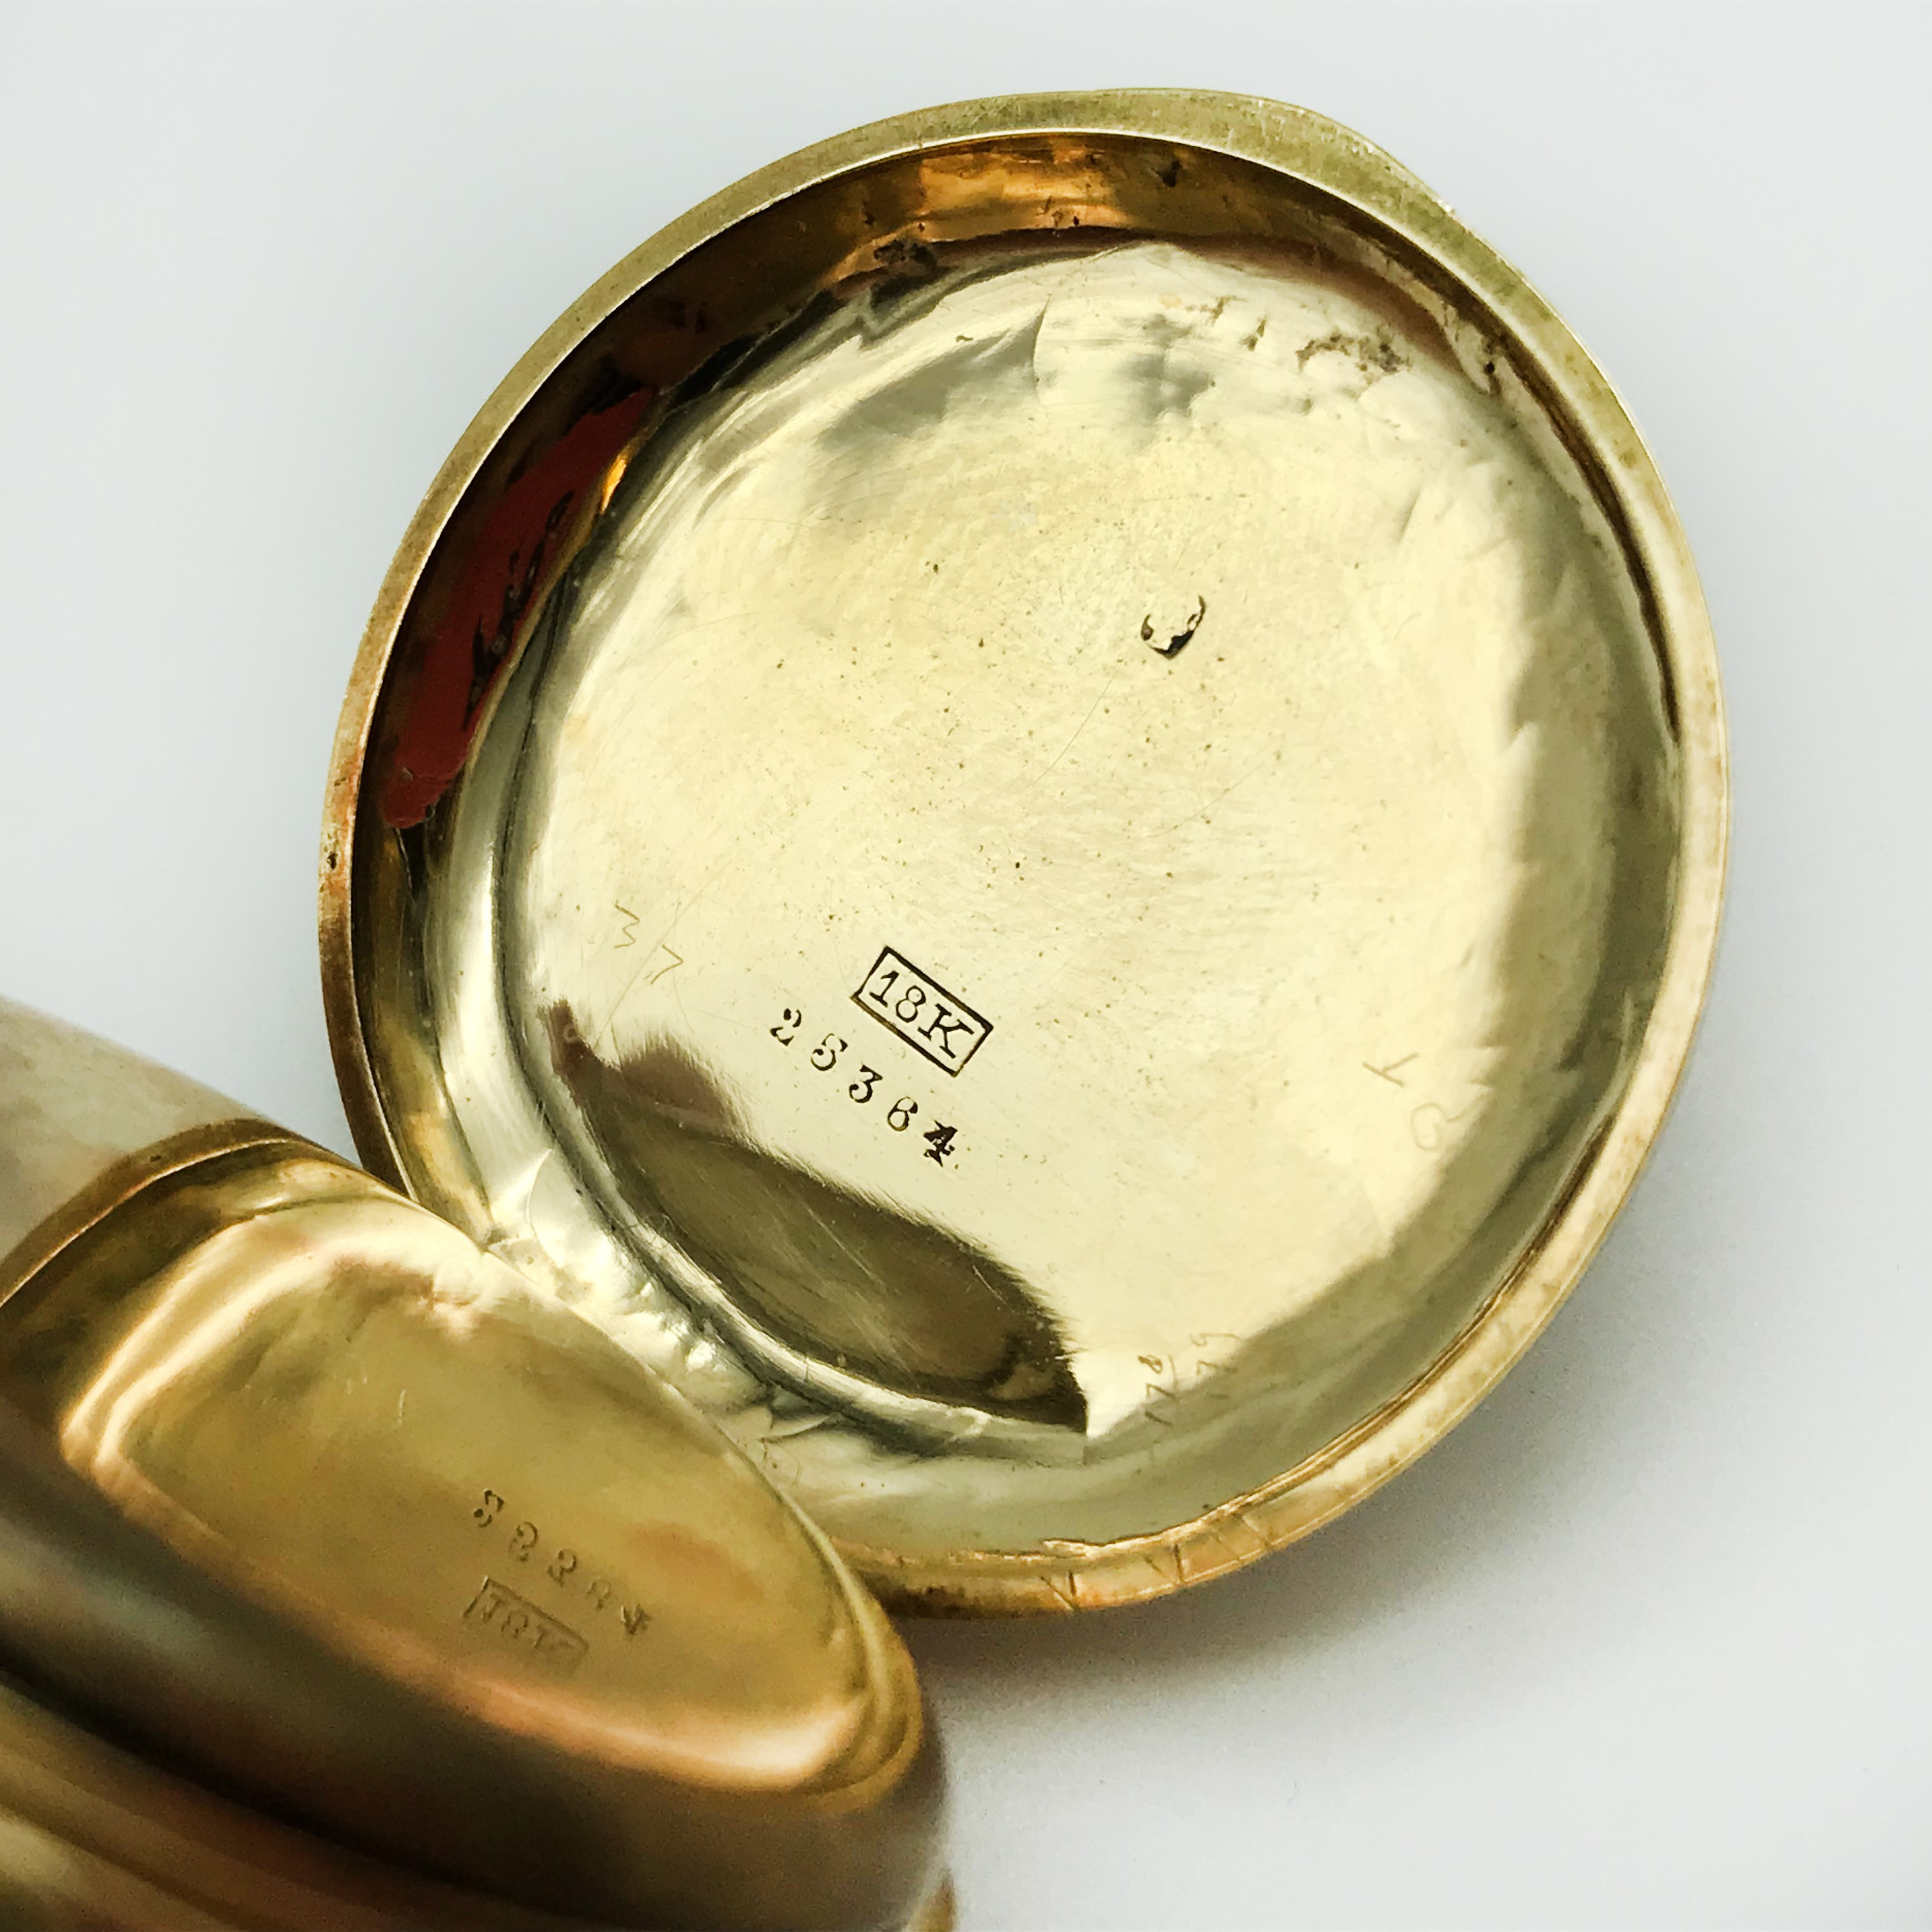 Lot 50 - 18K GOLD FOB WATCH IN WORKING CONDITION